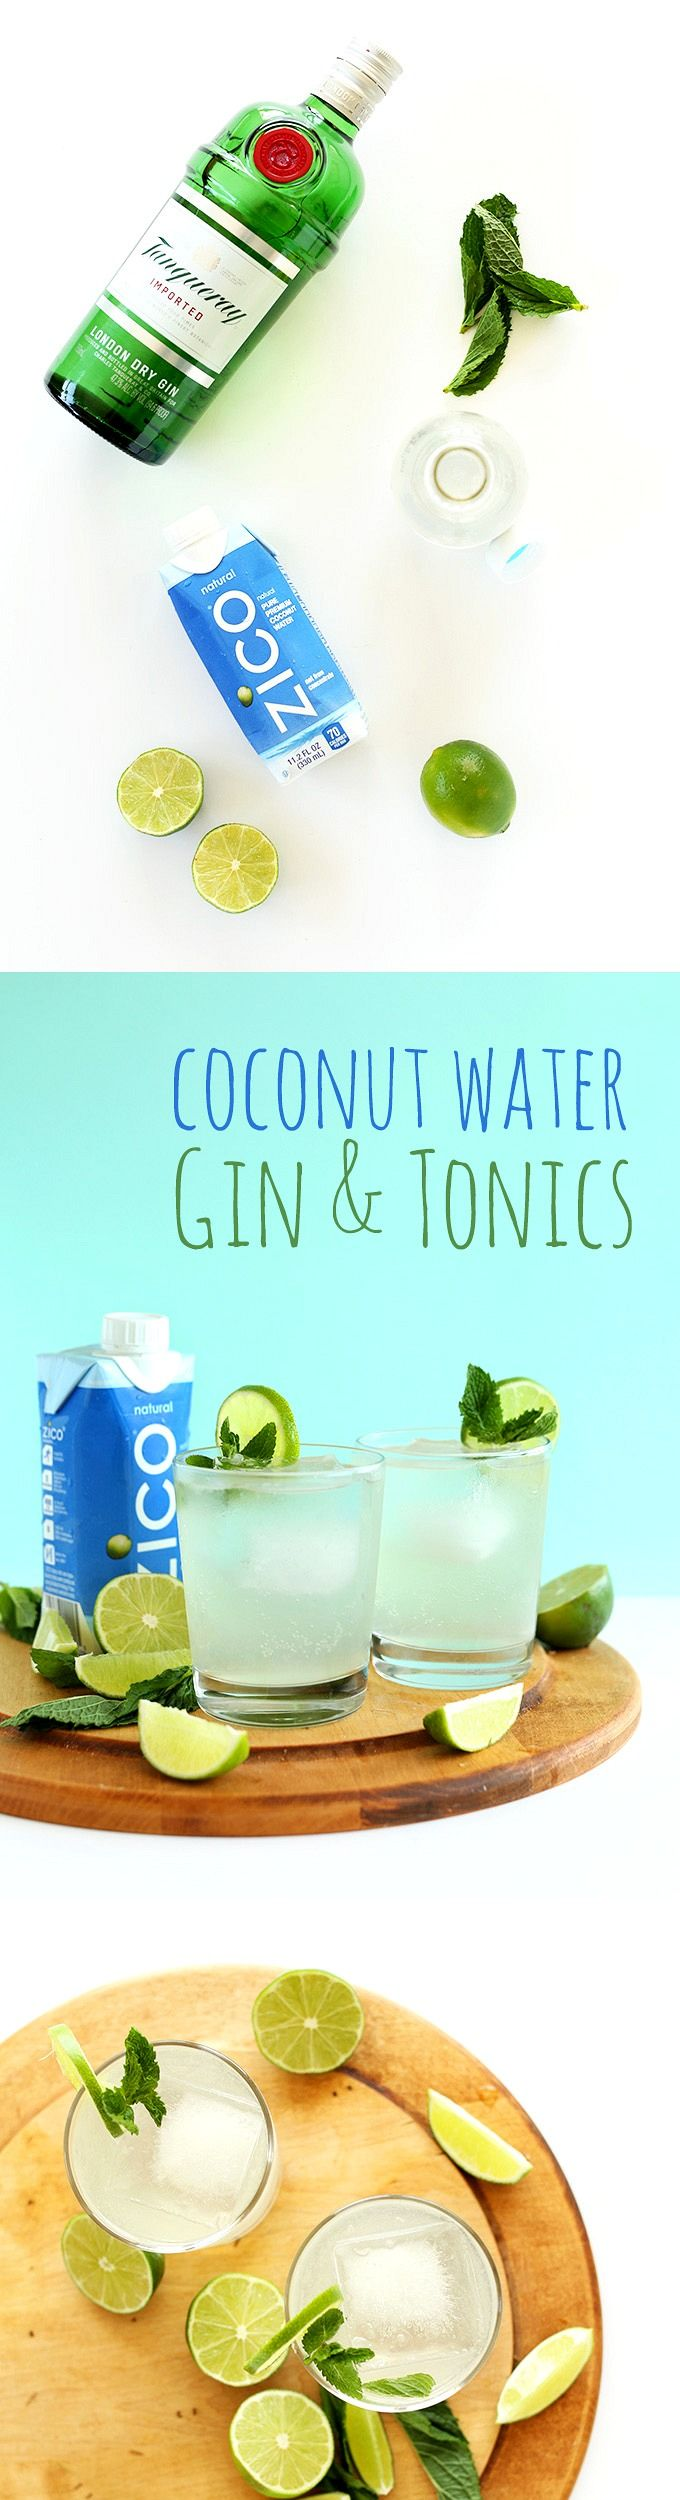 SUPER Refreshing 4-ingredient Coconut GIN & TONICS! Naturally sweetened and perfectly sweet and tart! #CrackLifeOpen